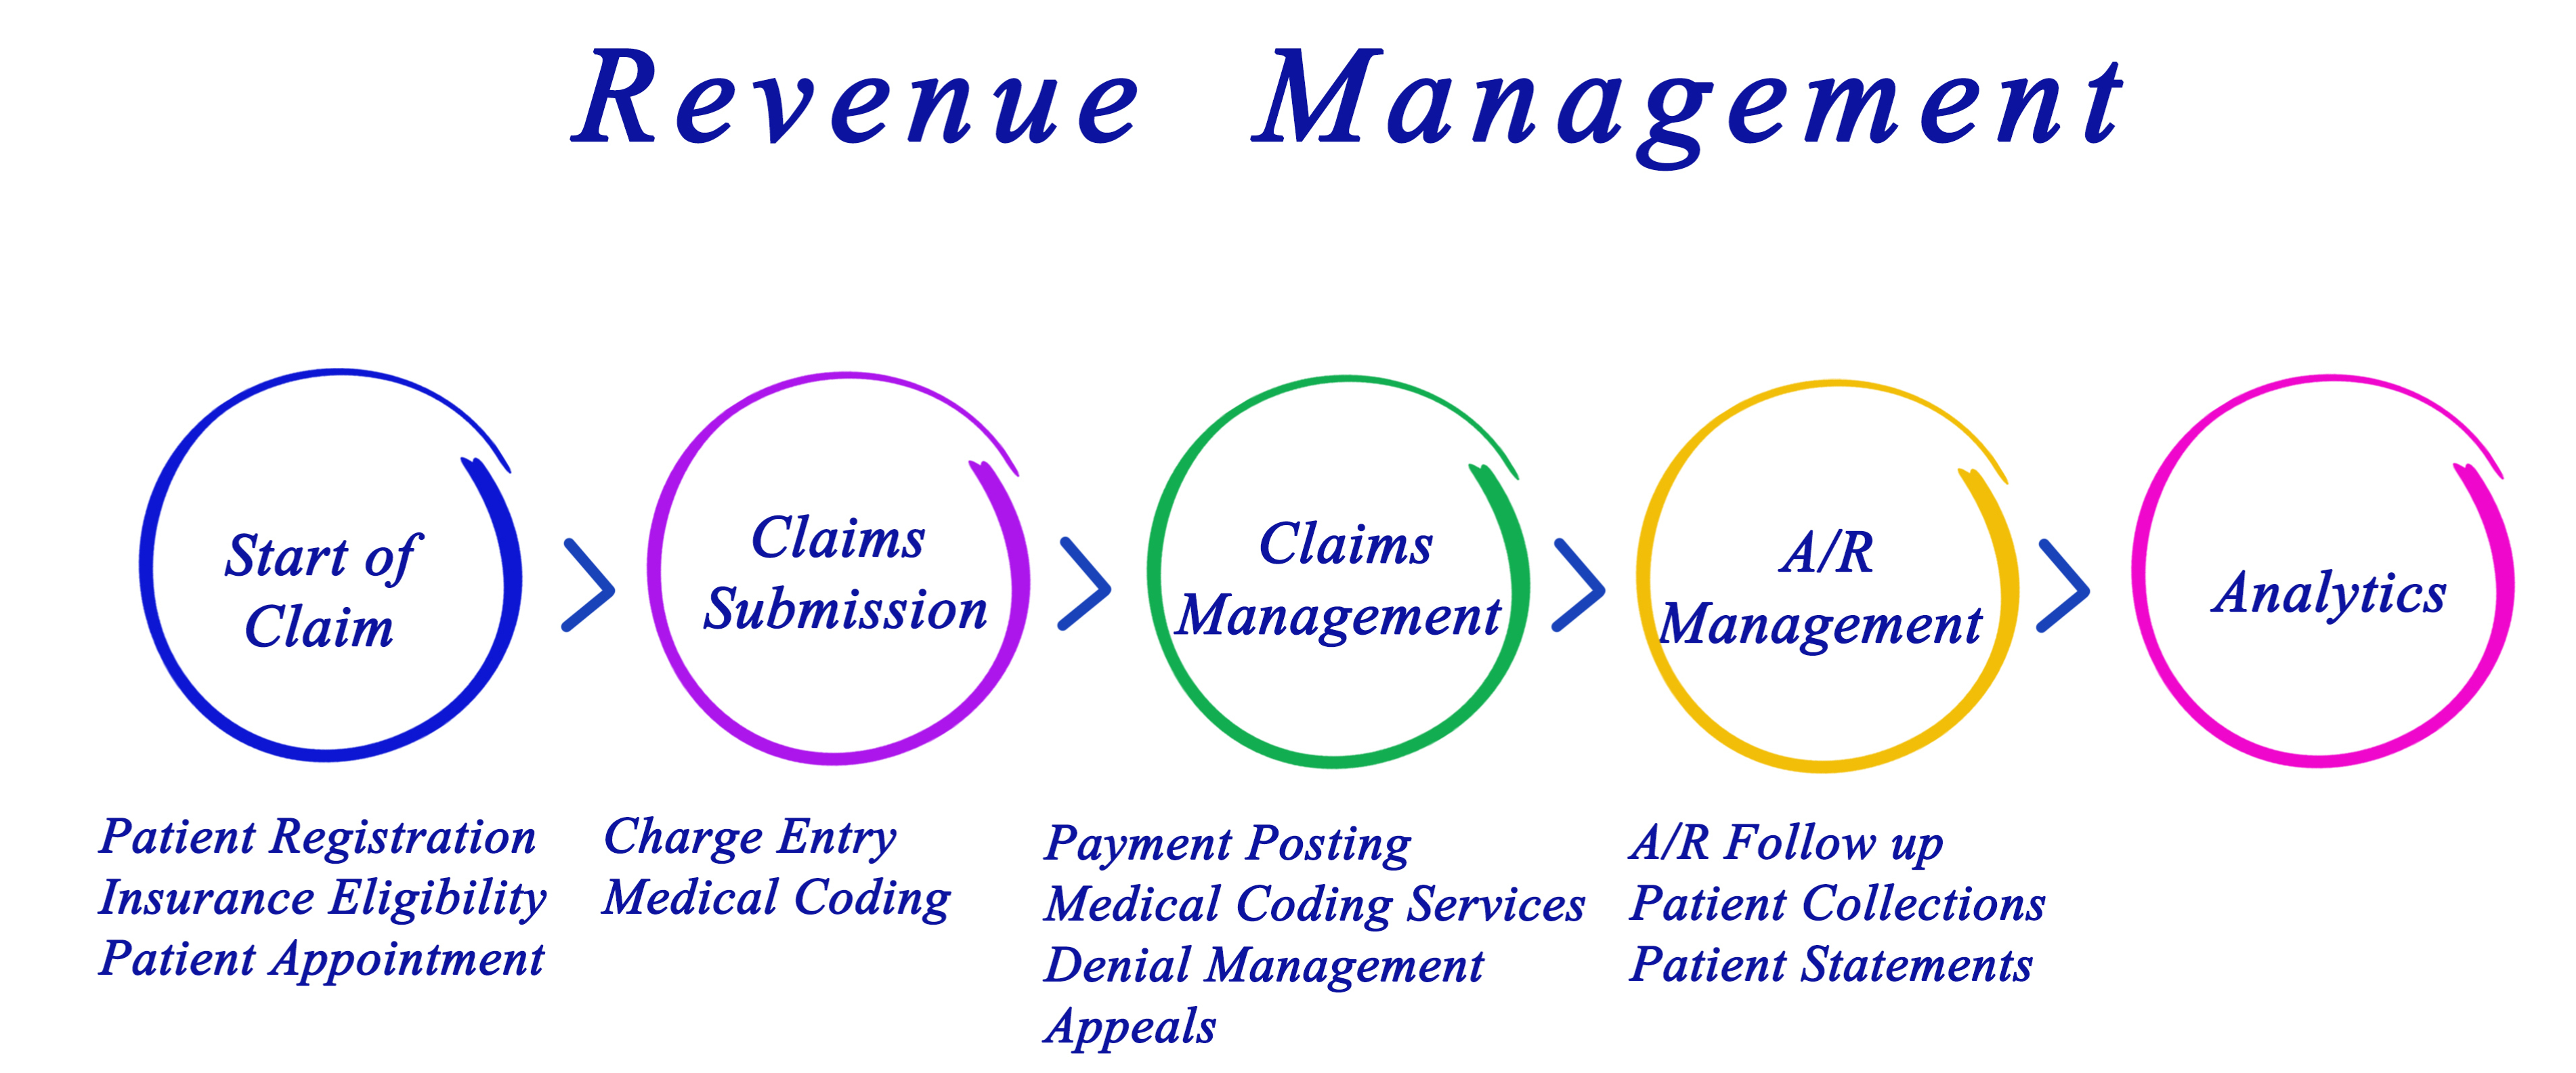 What does your revenue management cycle look like?